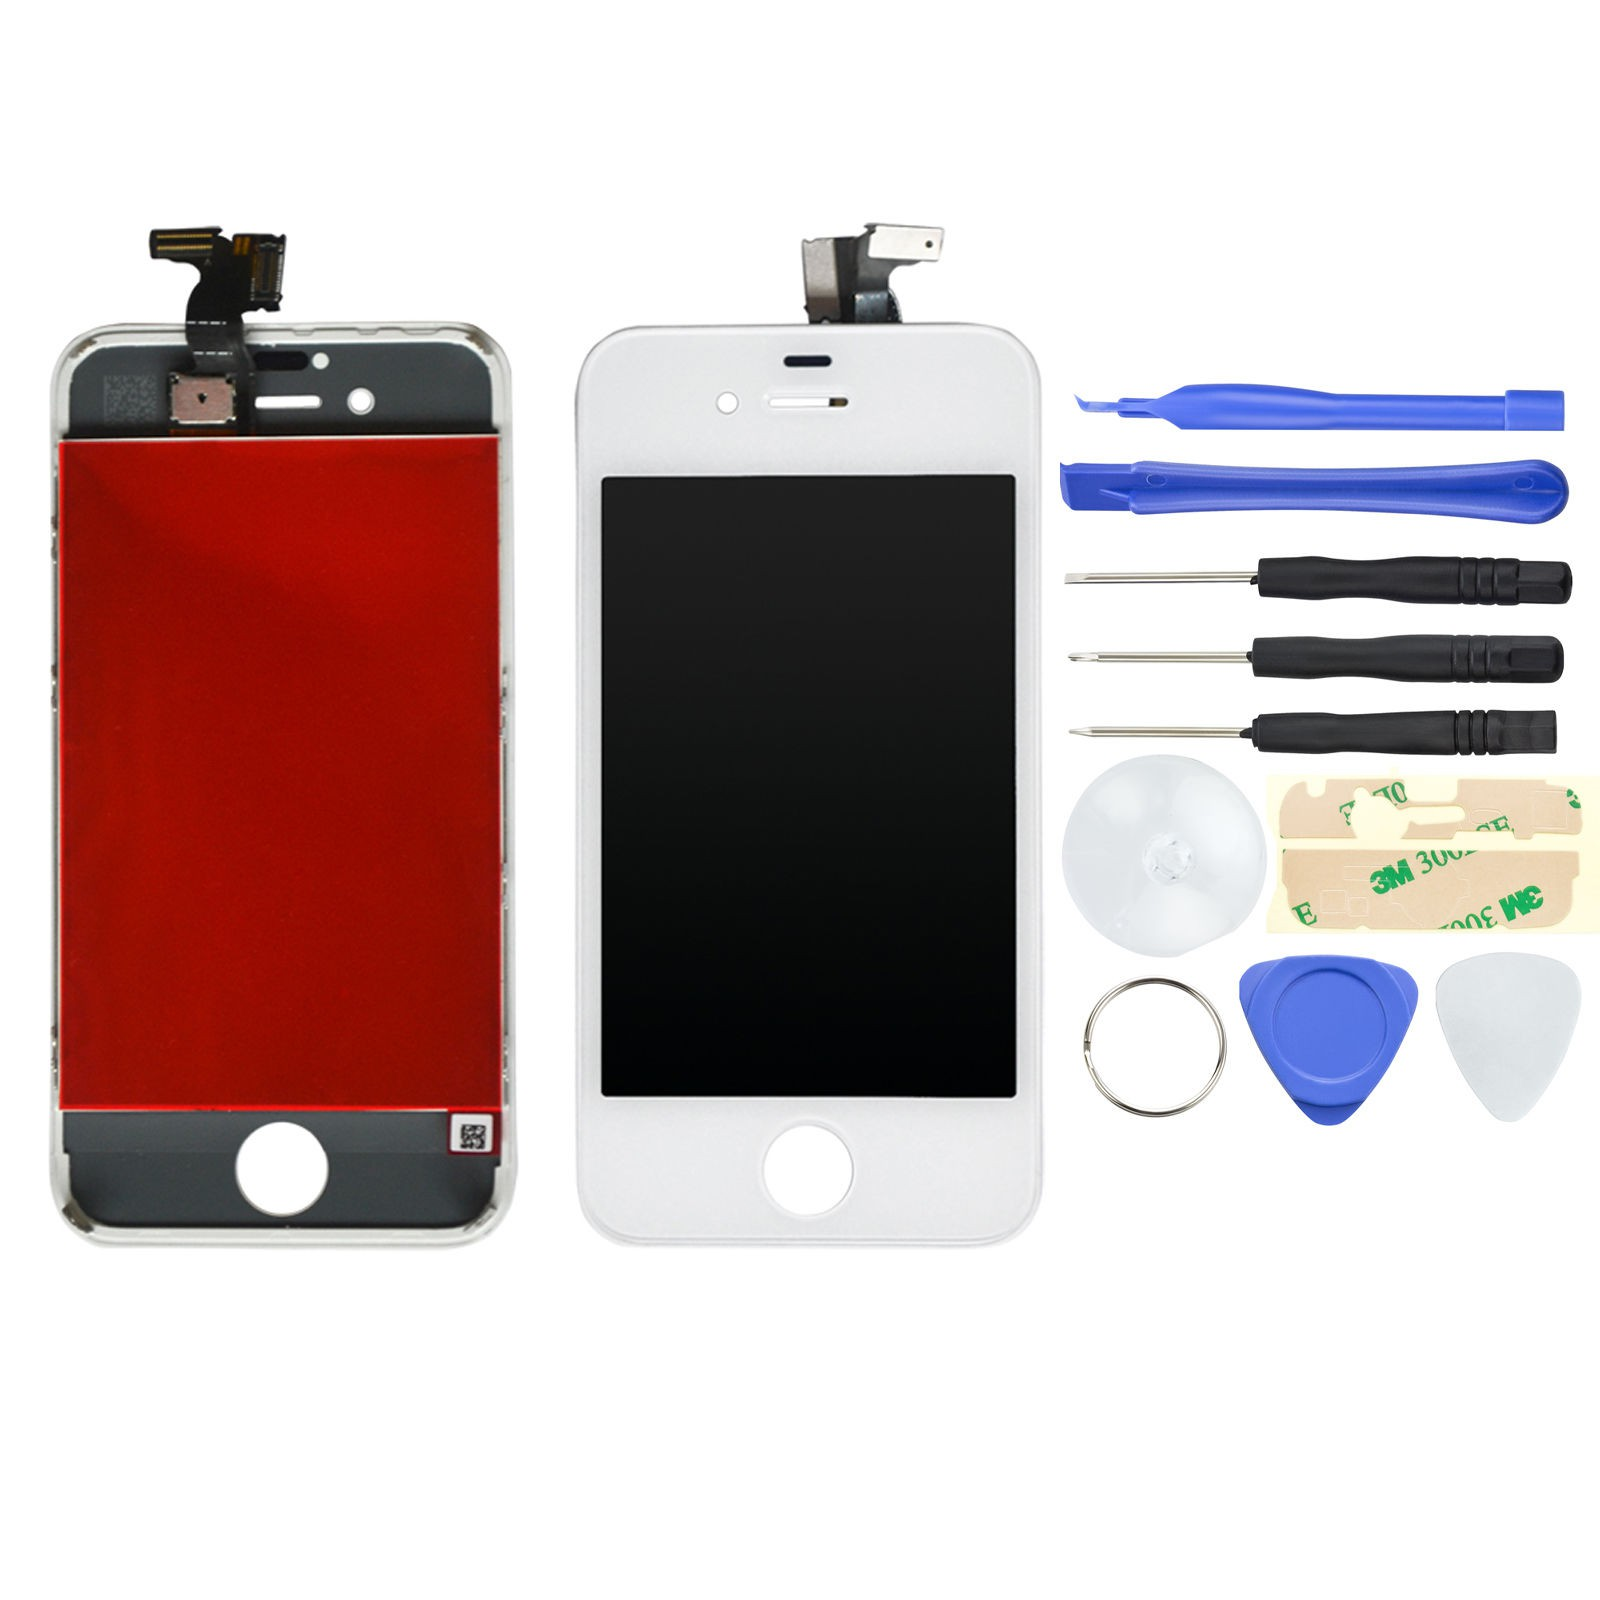 EXO Phone LCD Display + Backcover für iPhone 4 - Weiß